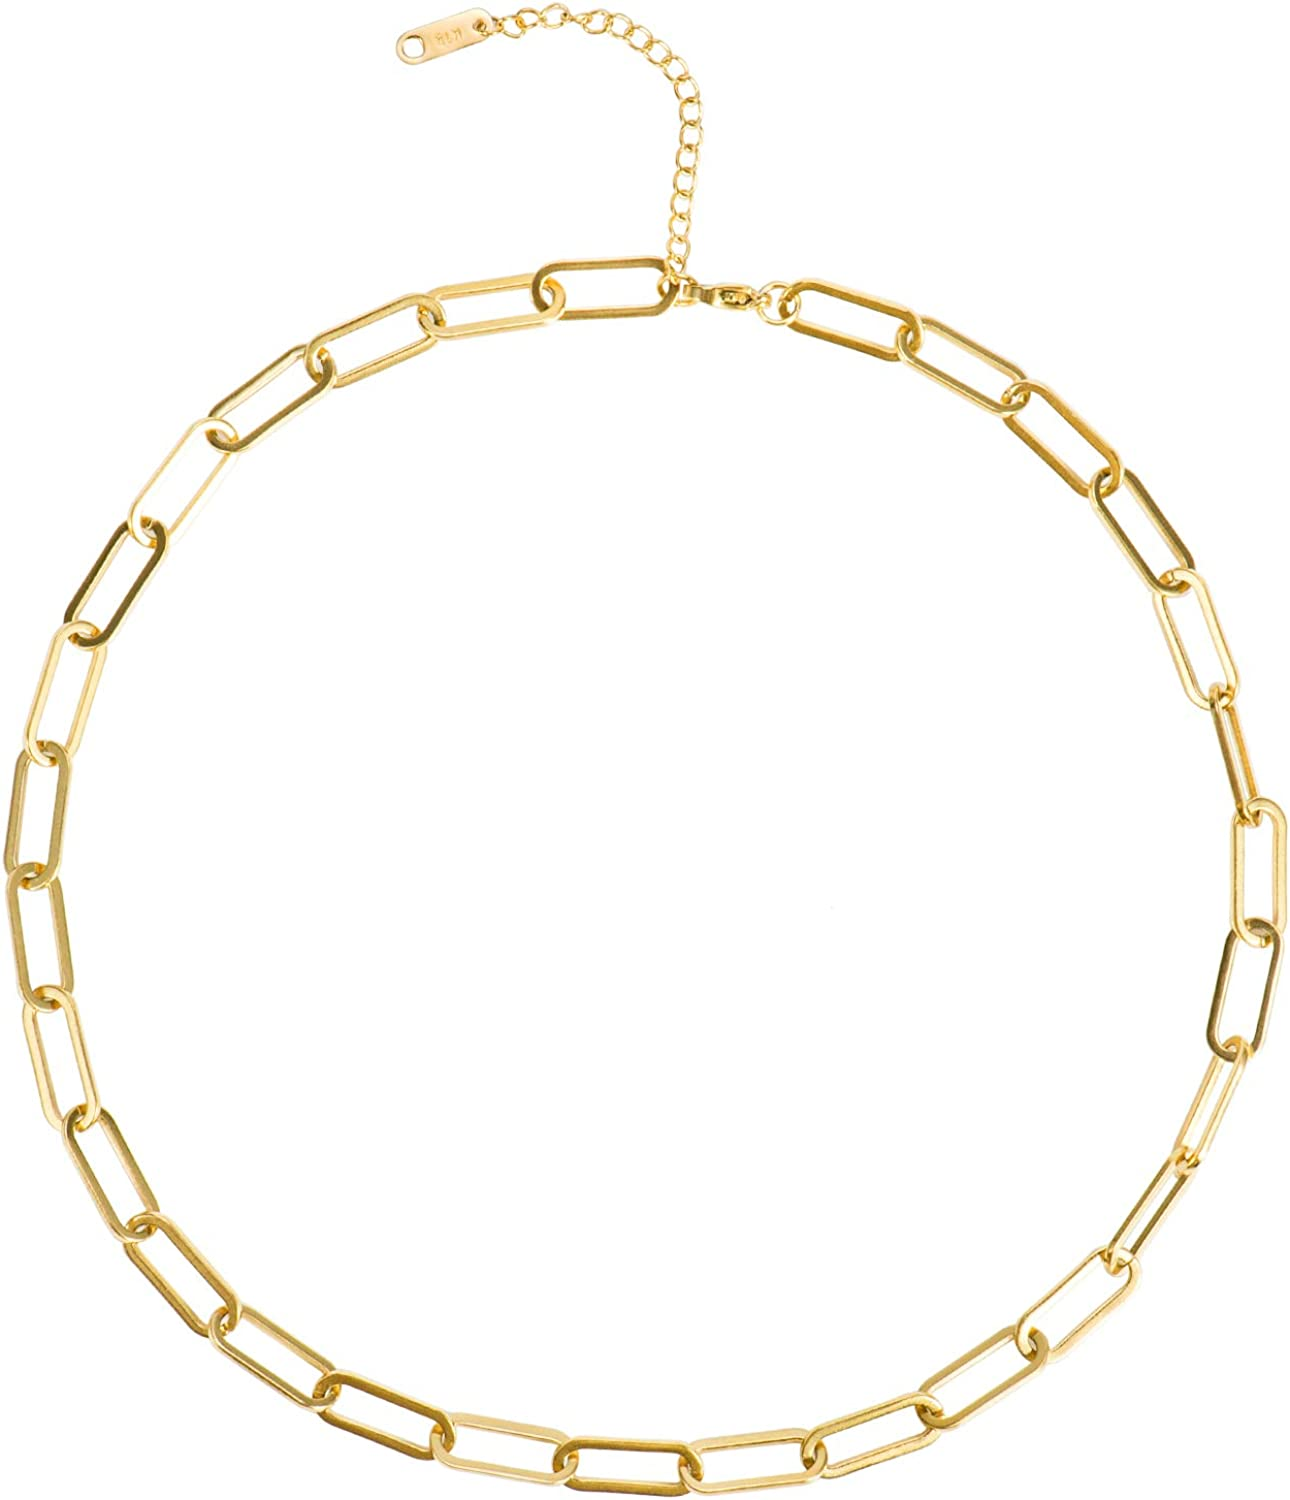 Aurelia Mae 18K Gold Large Paperclip Chain Necklace Chunky Necklaces for Layering Gold Link Choker